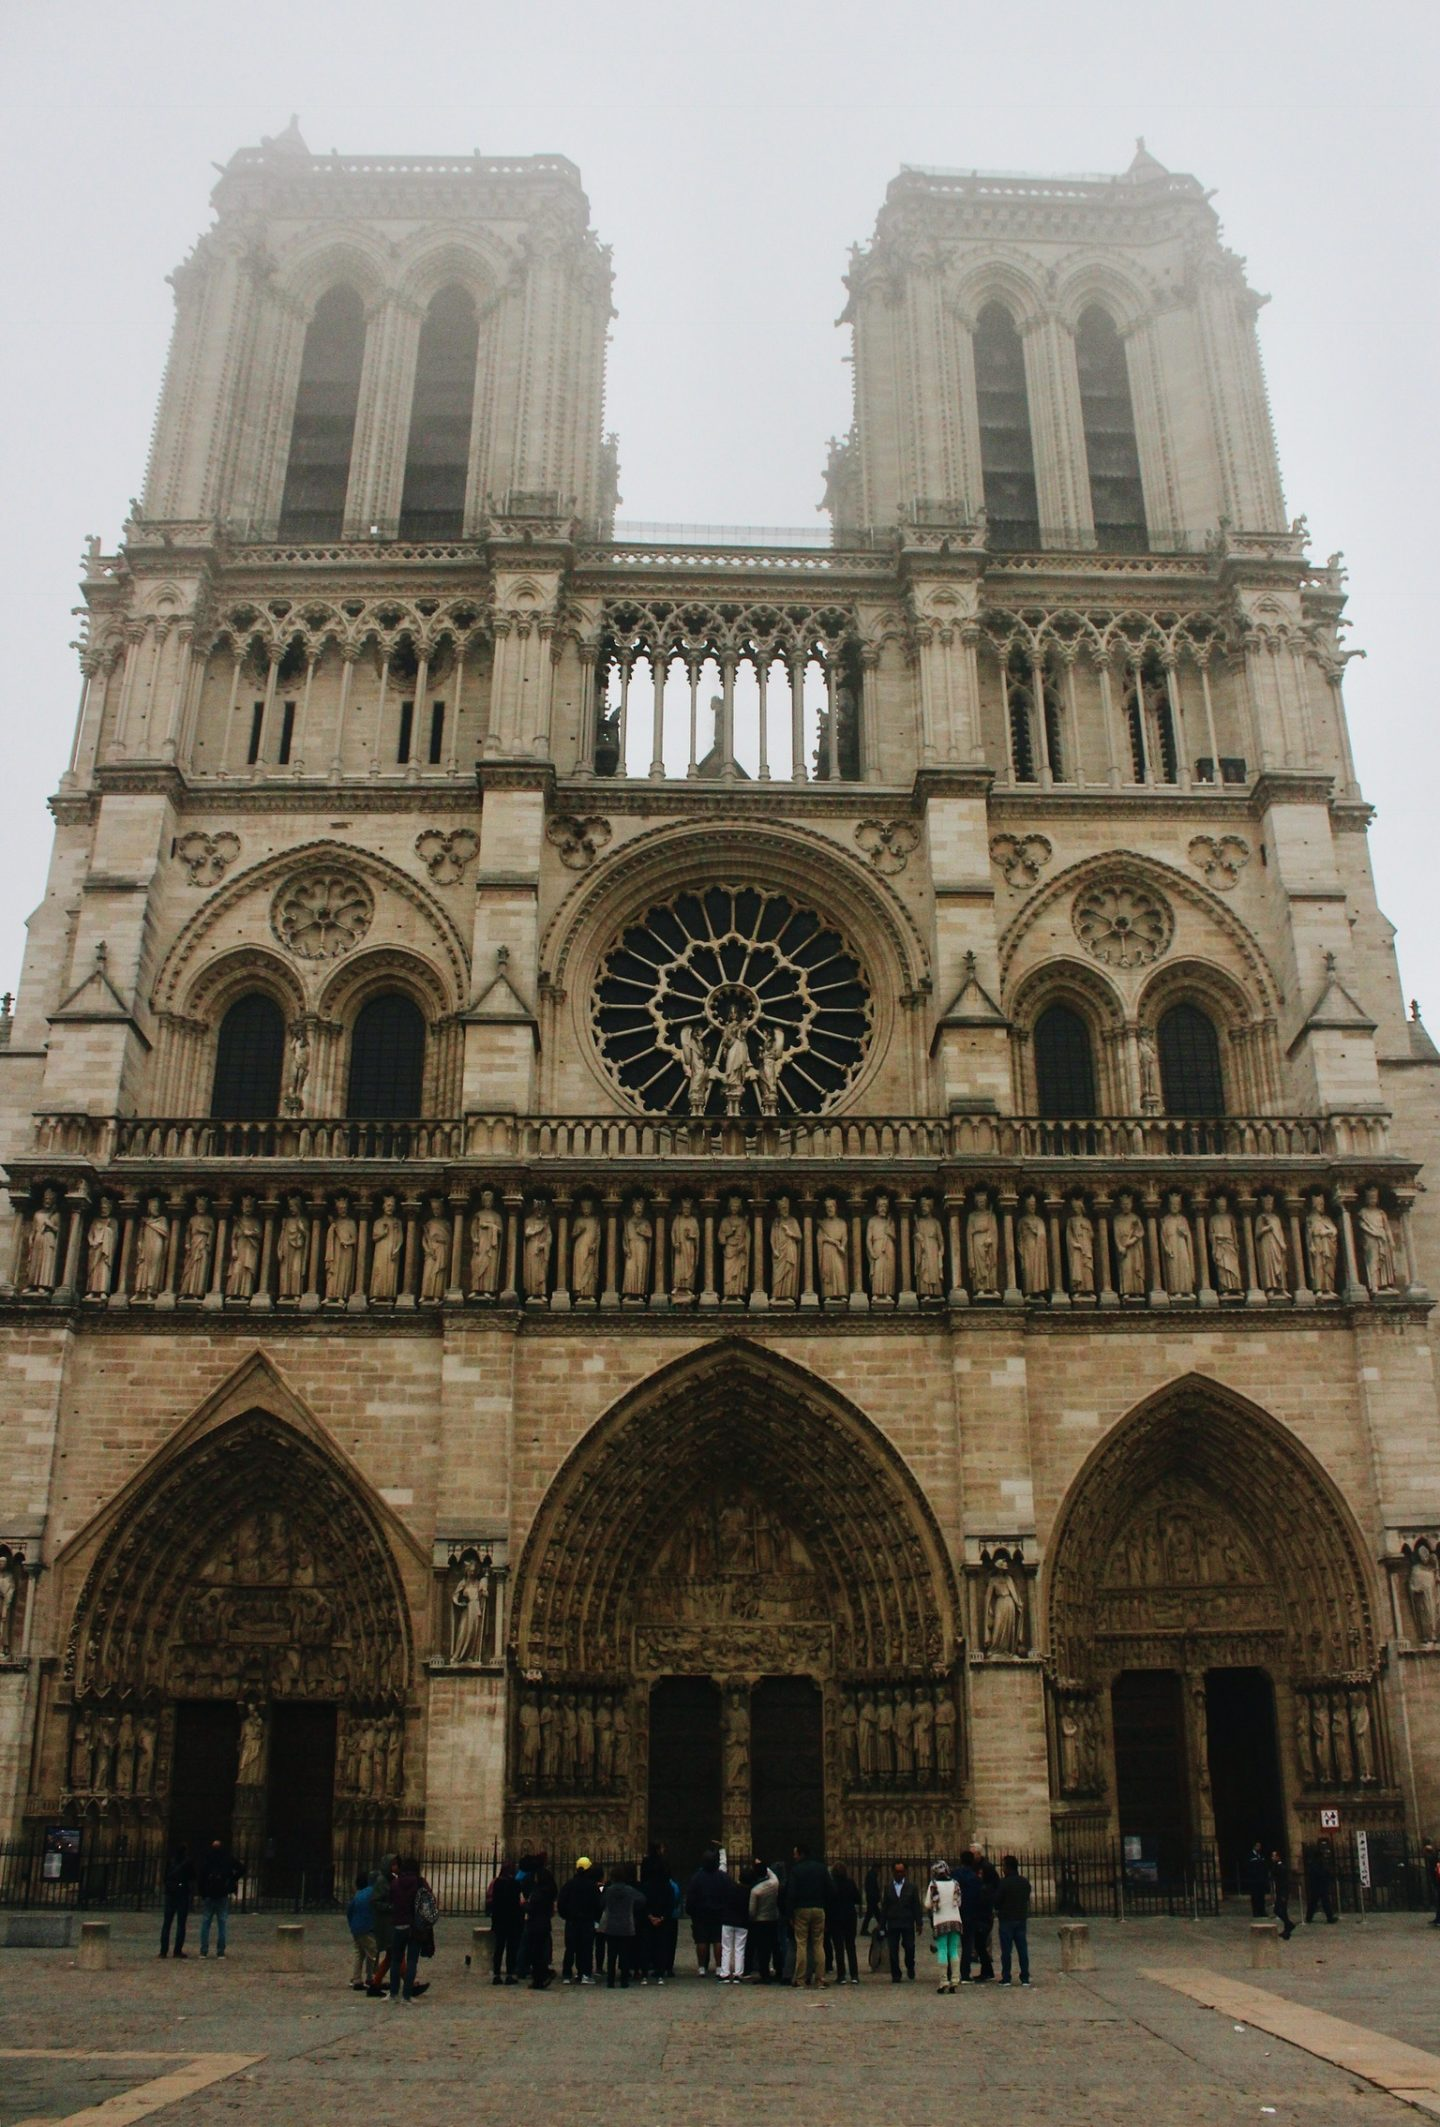 The Notre-Dame Cathedral's front facade